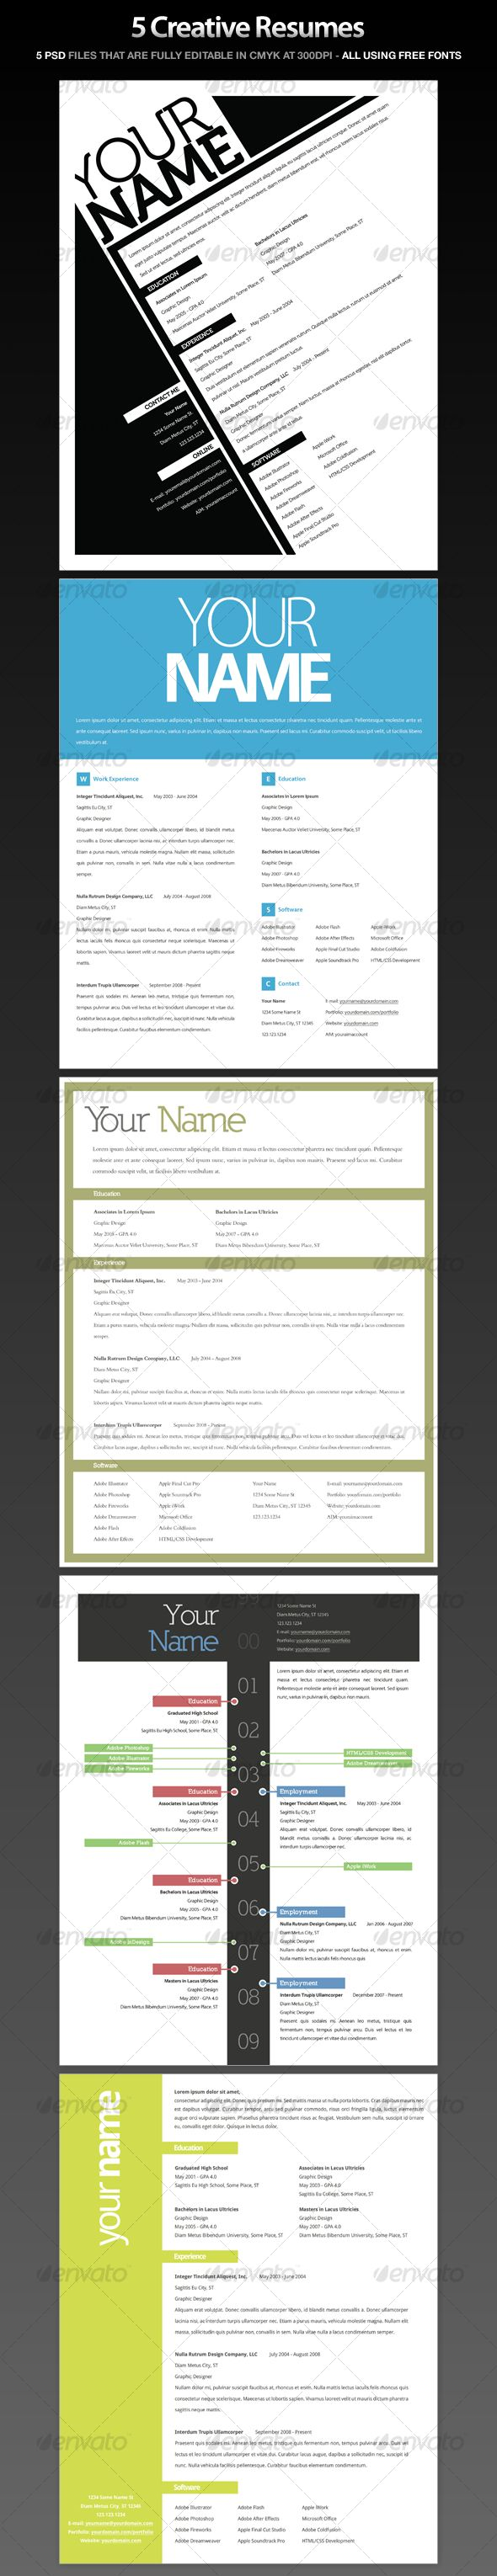 resume - Would be good for a high school class or adult education class activity.